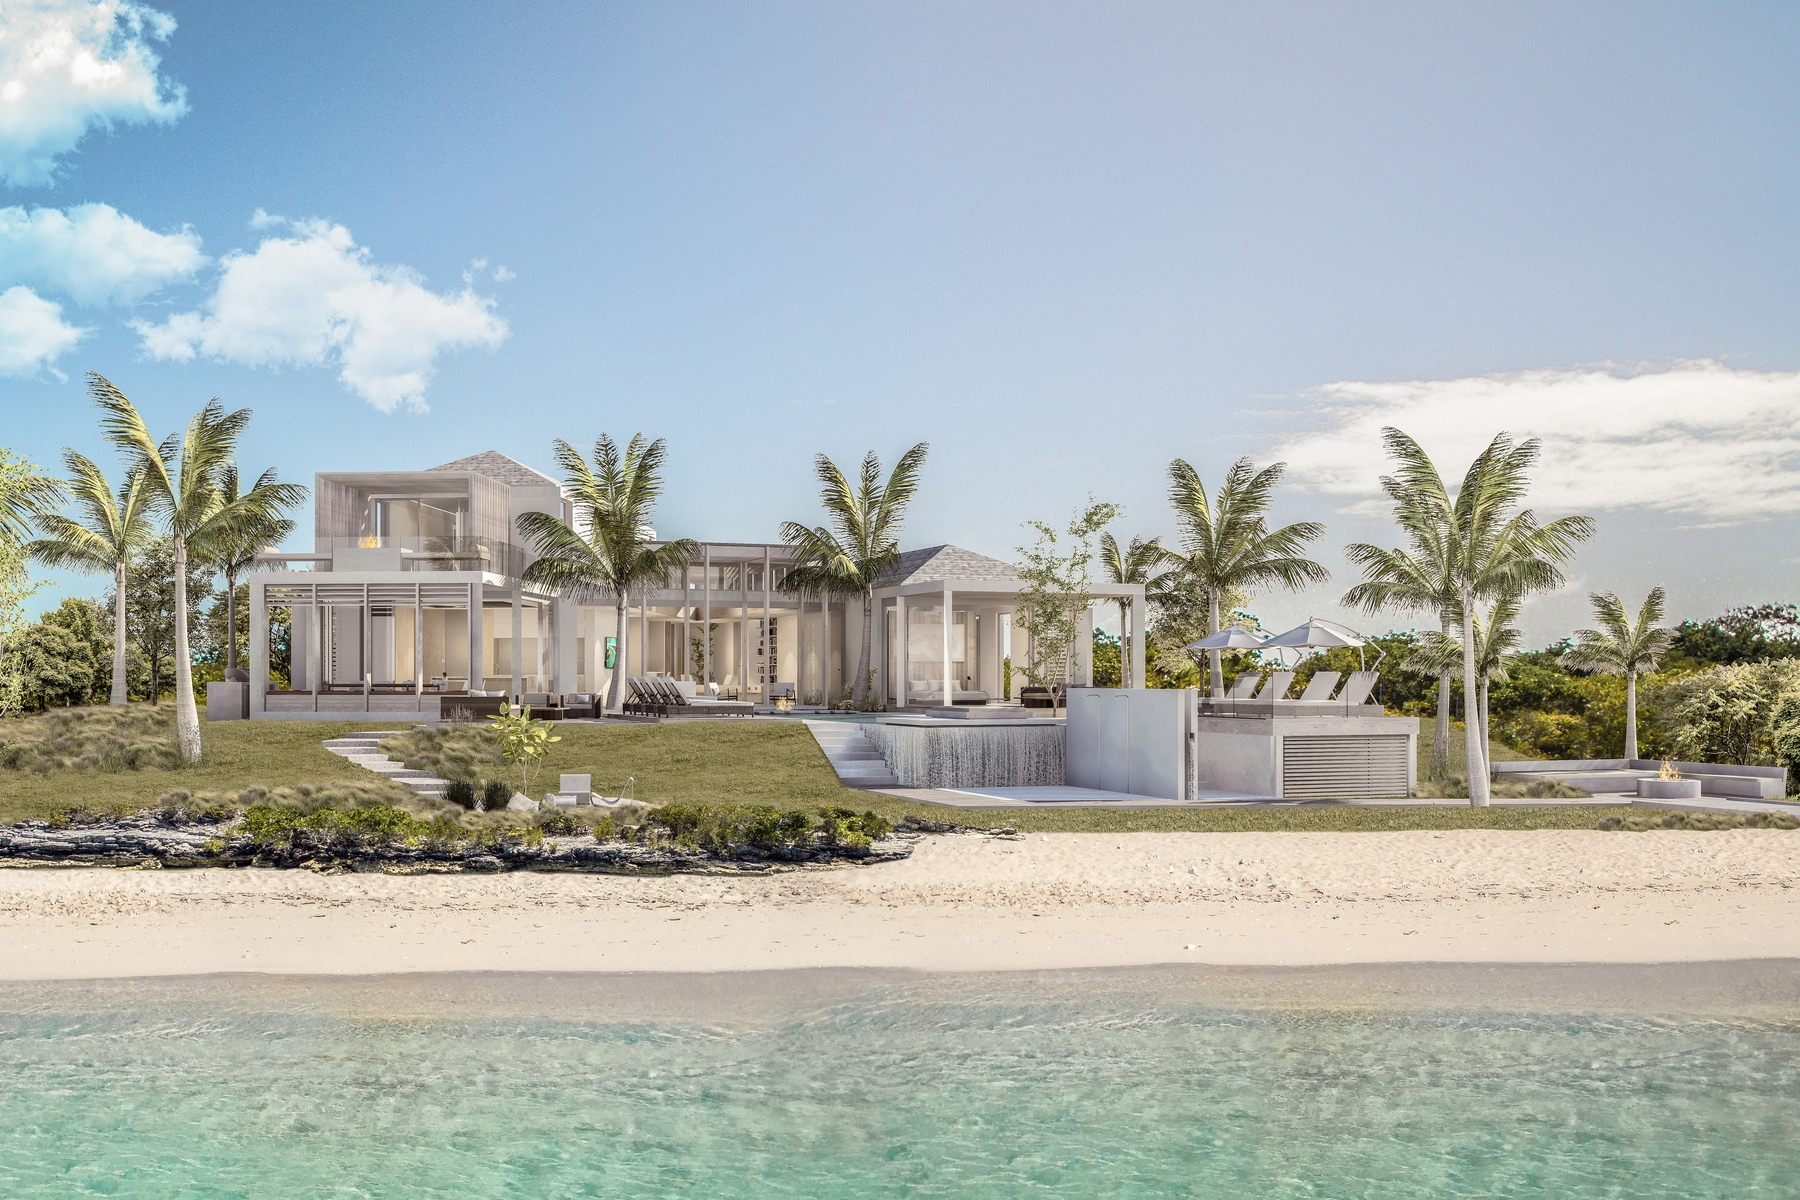 Maison unifamiliale pour l Vente à Panorama Y House - Beachfront Lot 2 Leeward, Providenciales, Îles Turques Et Caïques